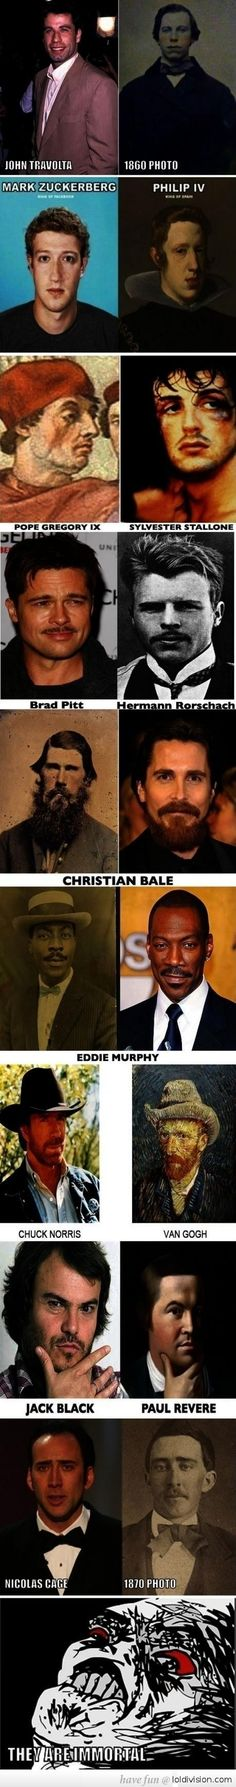 I found the pix of Christian Bale, Nicholas Cage and Eddie Murphy to be the creepiest.... maybe they ARE immortal!